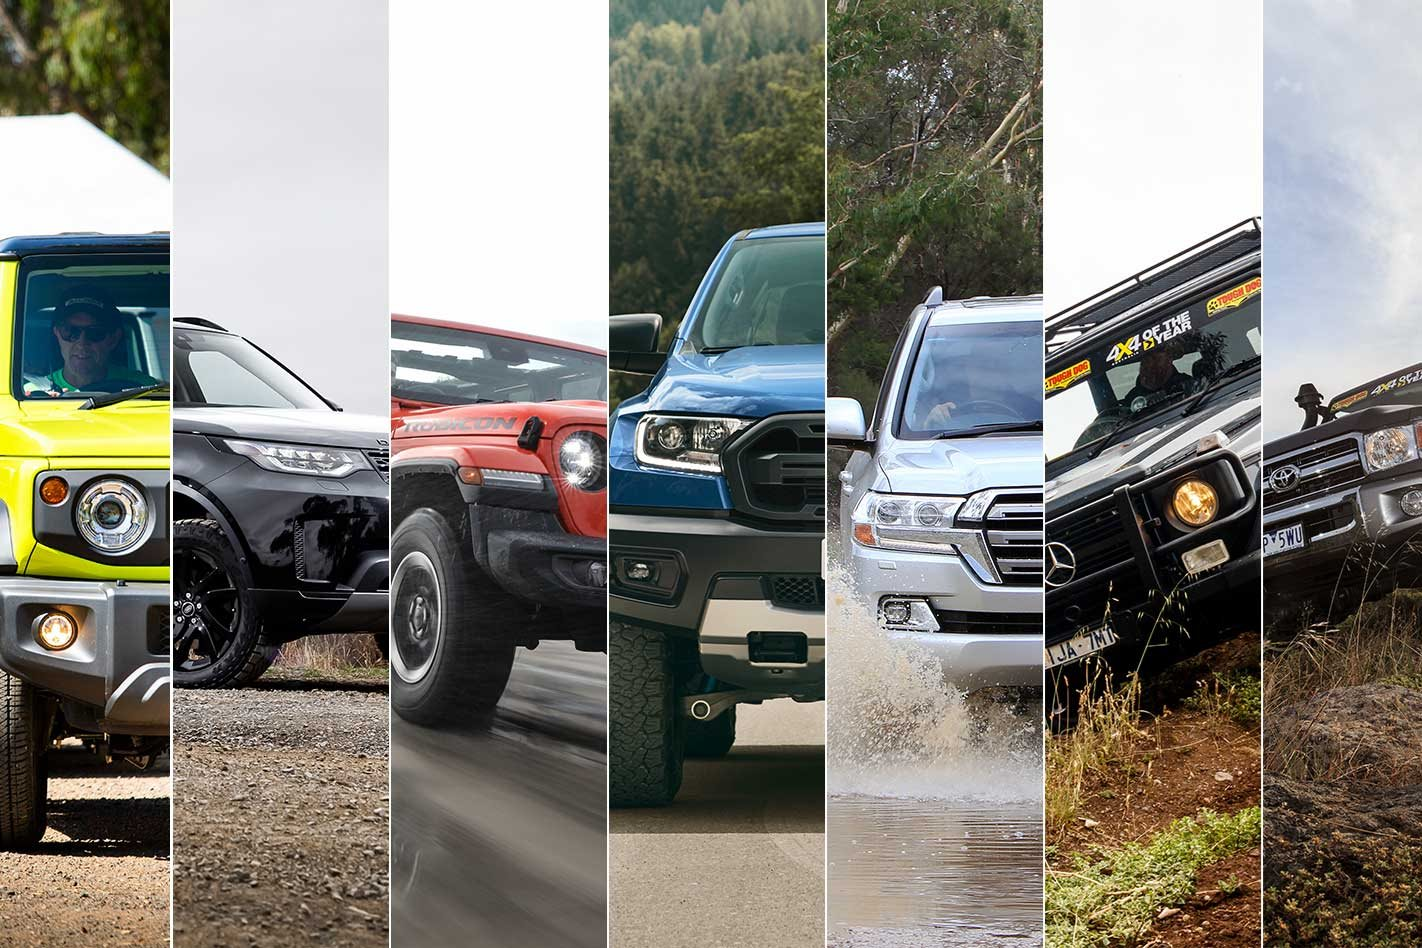 2019's best new off-road 4x4s you can buy straight off the showroom